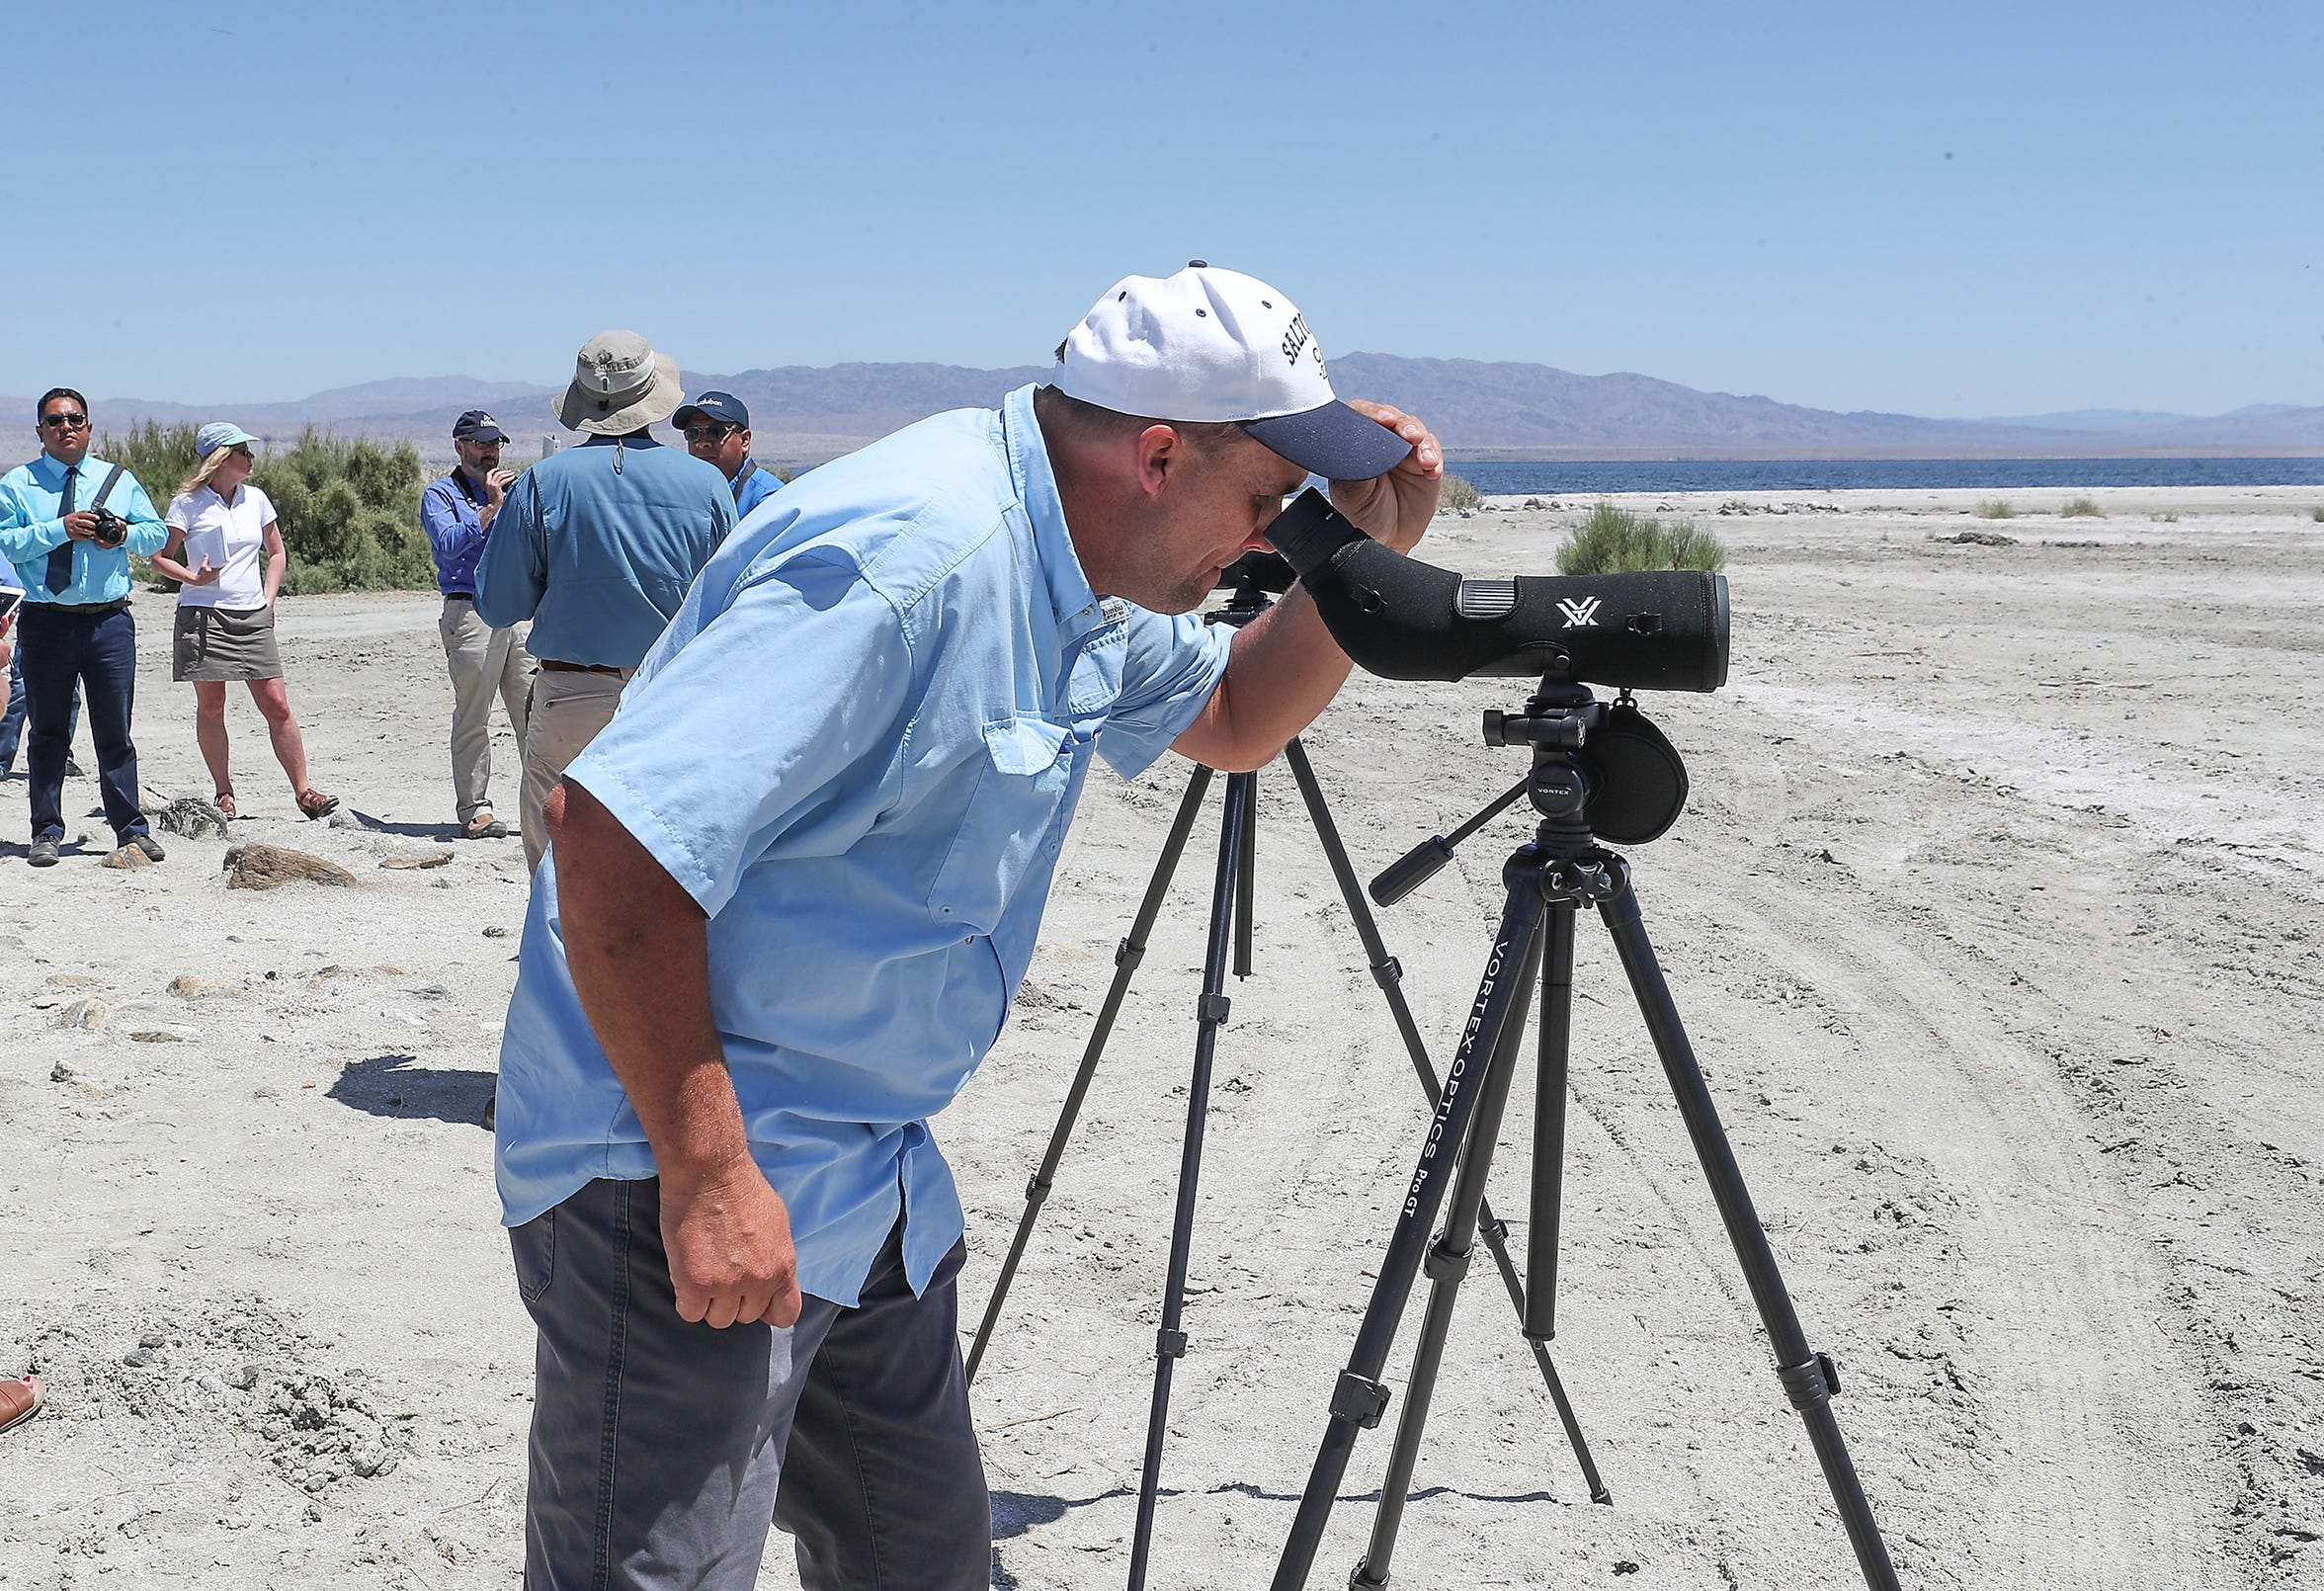 Kurt Leushner, professor of Natural Resources at College of the Desert, looks at birds through at the Salton Sea, April 30, 2019.